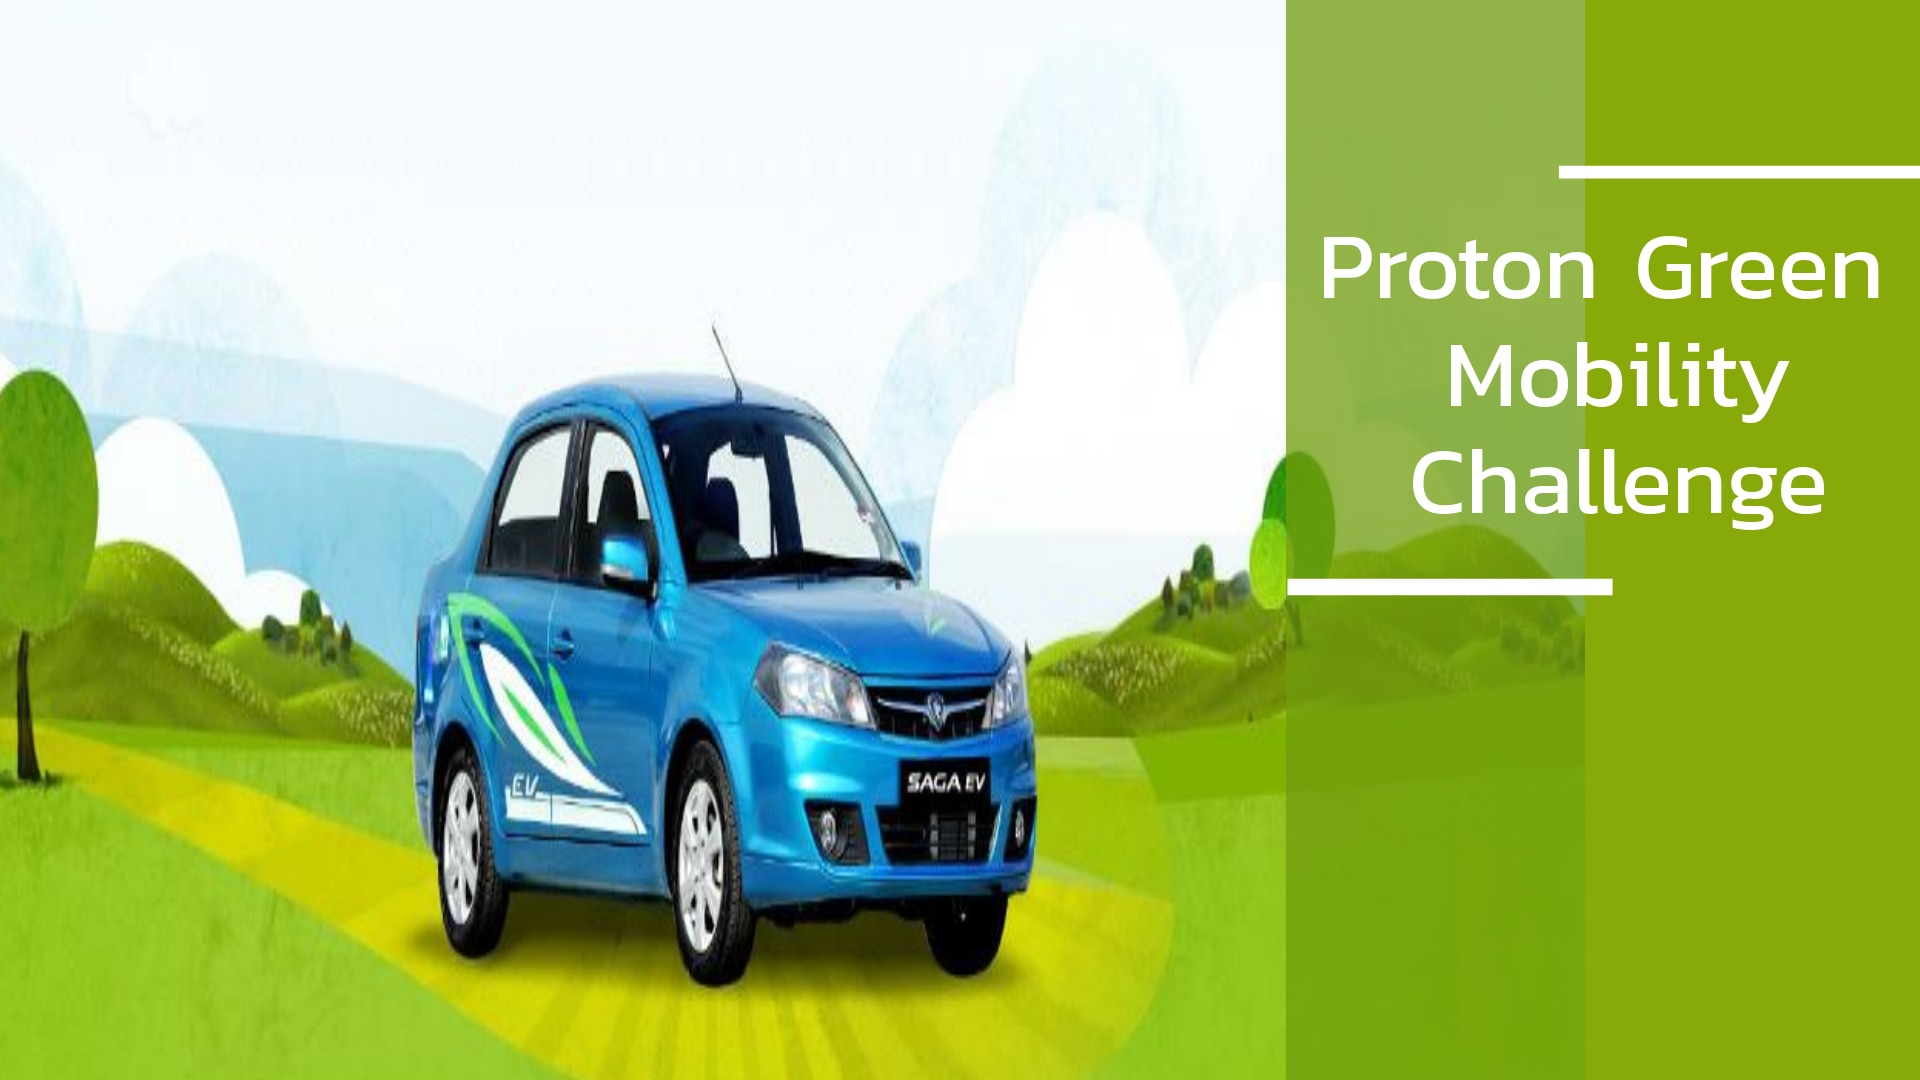 green_mobility_challenge_proton